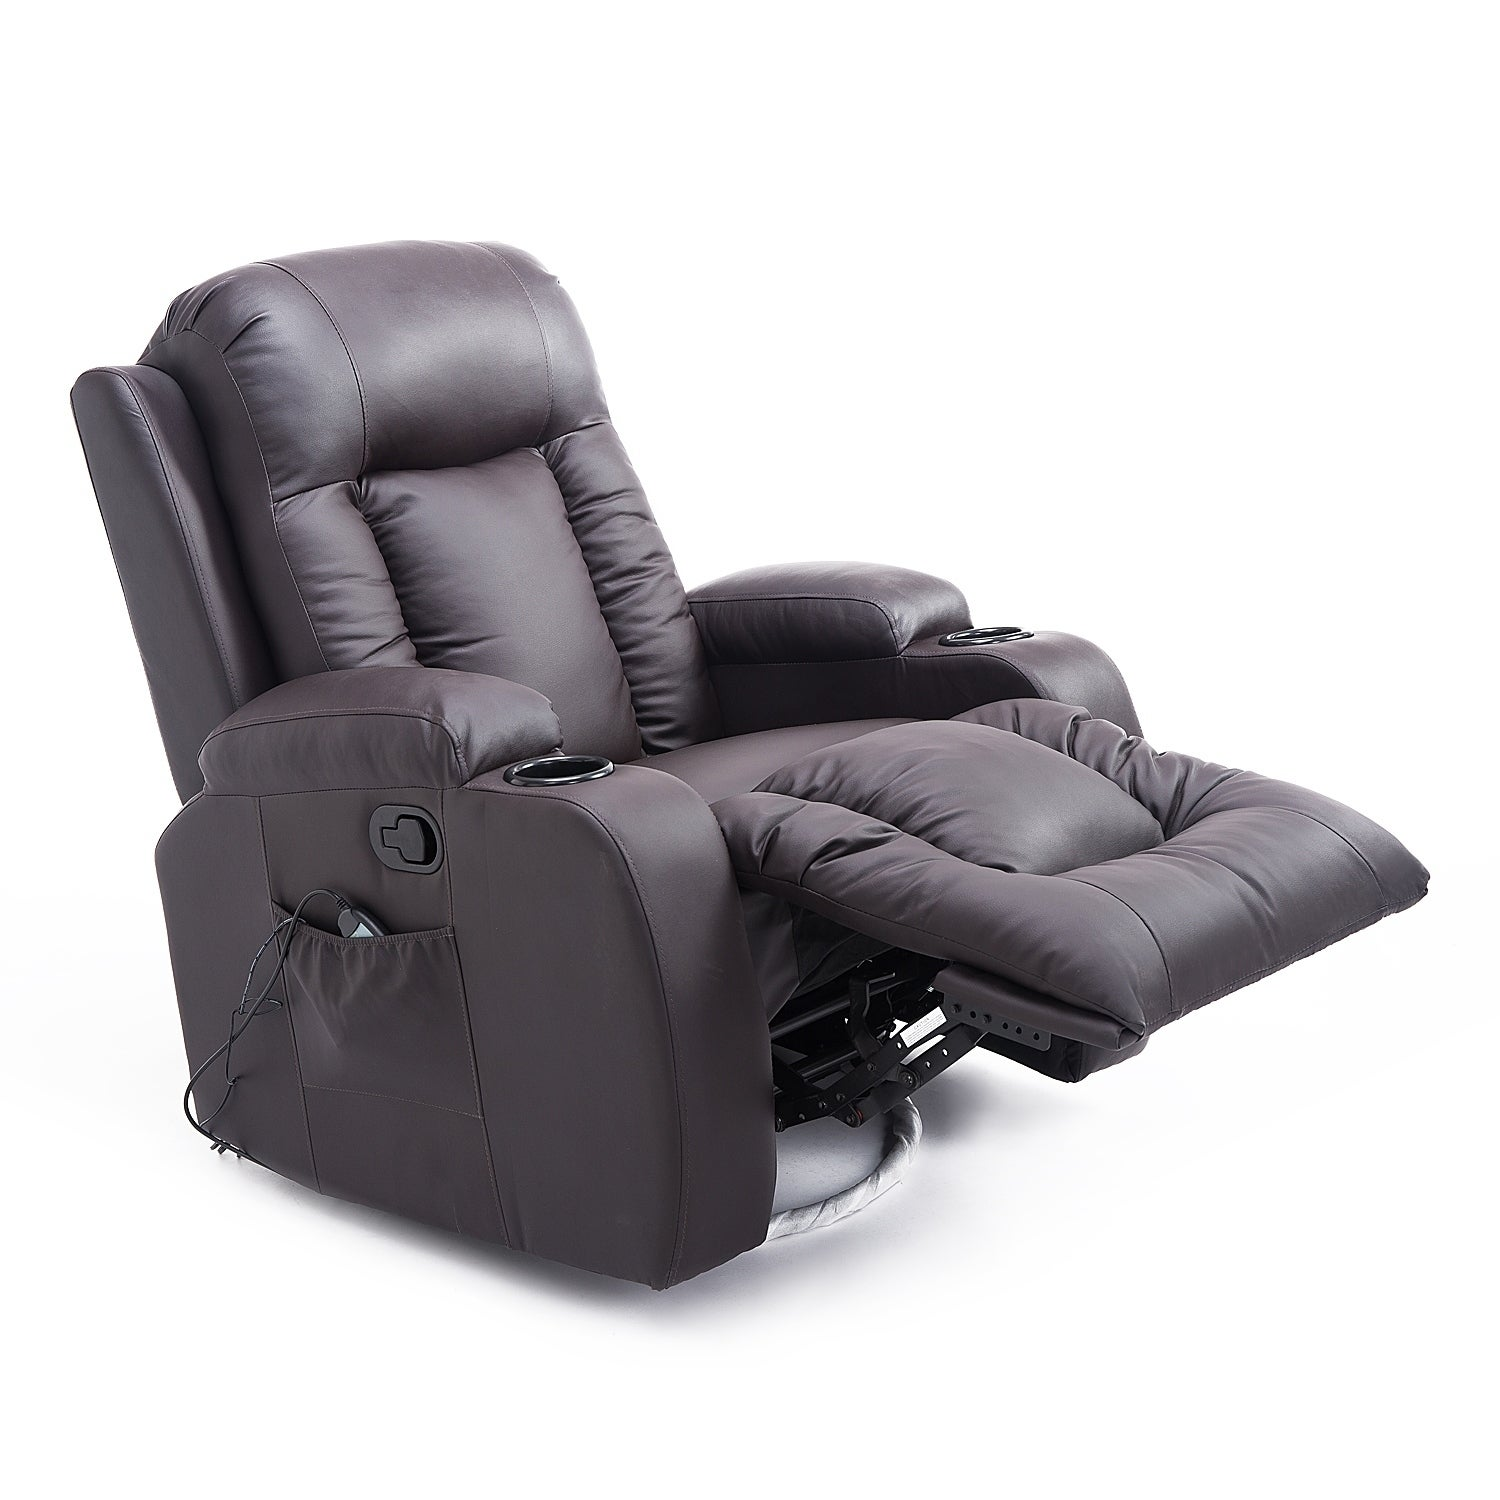 shop homcom pu leather heated vibrating massage recliner chair with